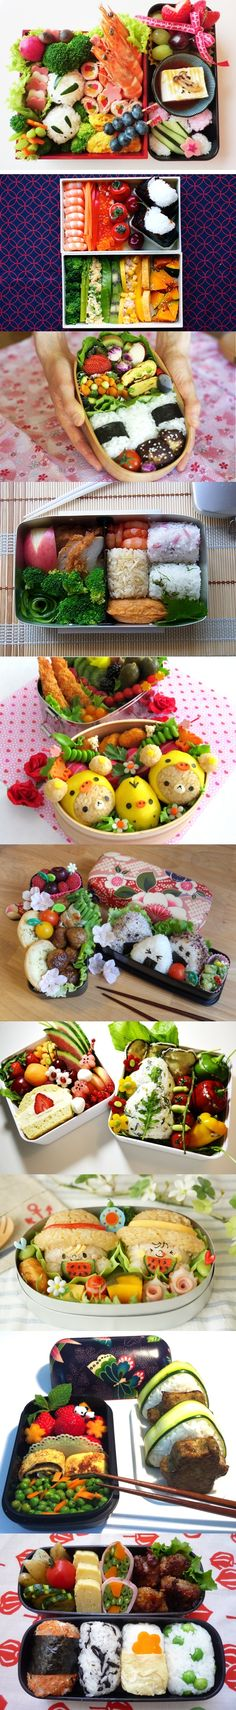 b480dccbc9de Bento 2012 Contest Top 10 finalists. Can you imagine the effort that goes  into these